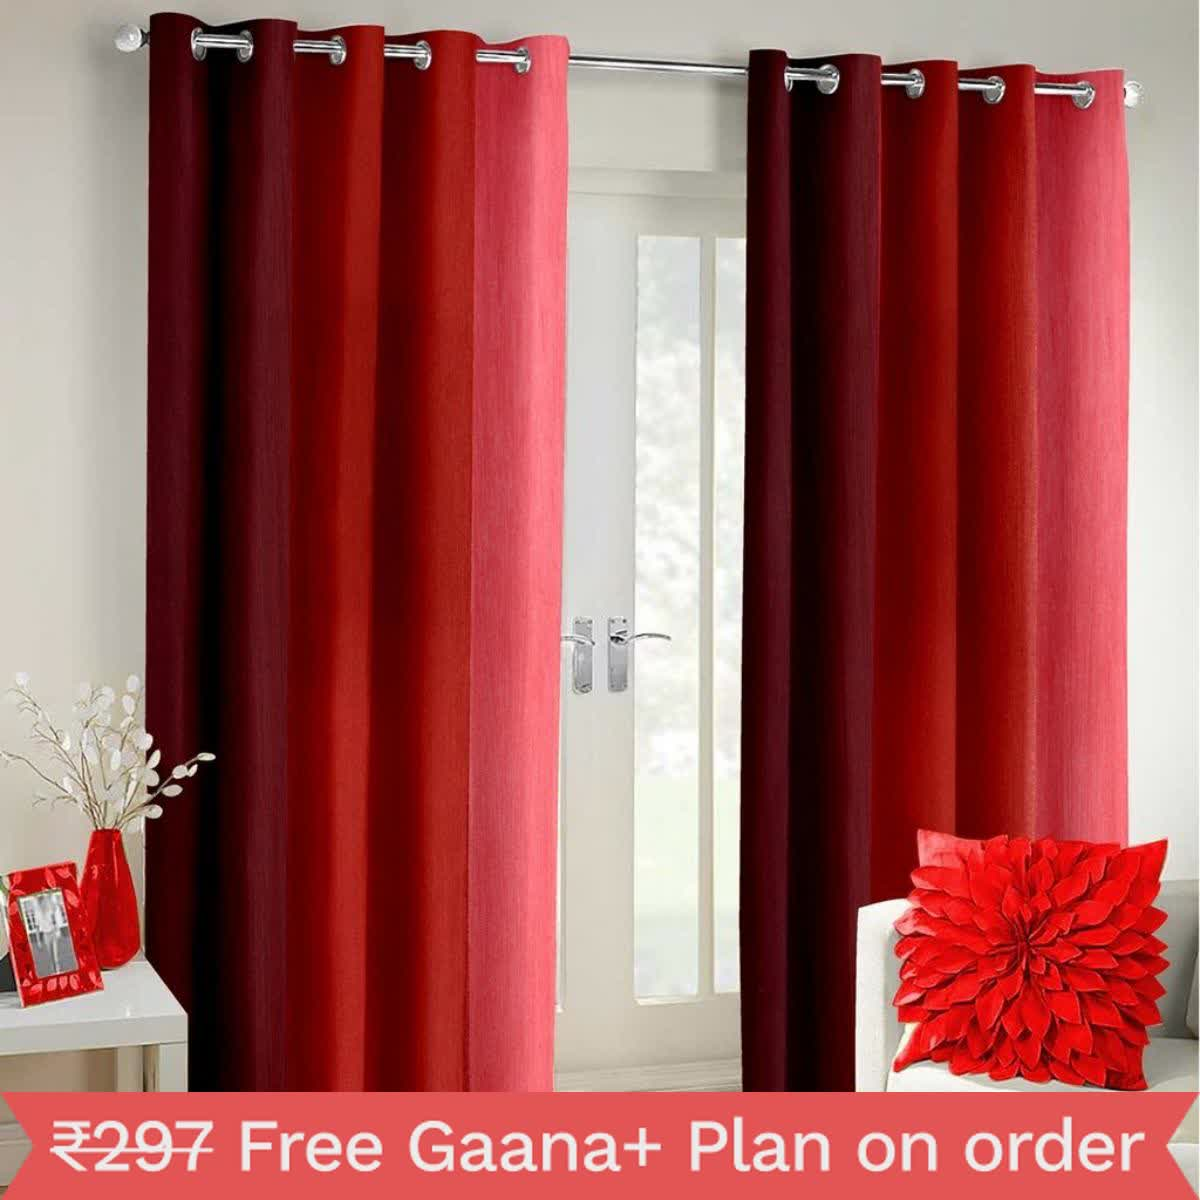 IndianOnlineMall shaded Single long crush curtain(4x7ft)